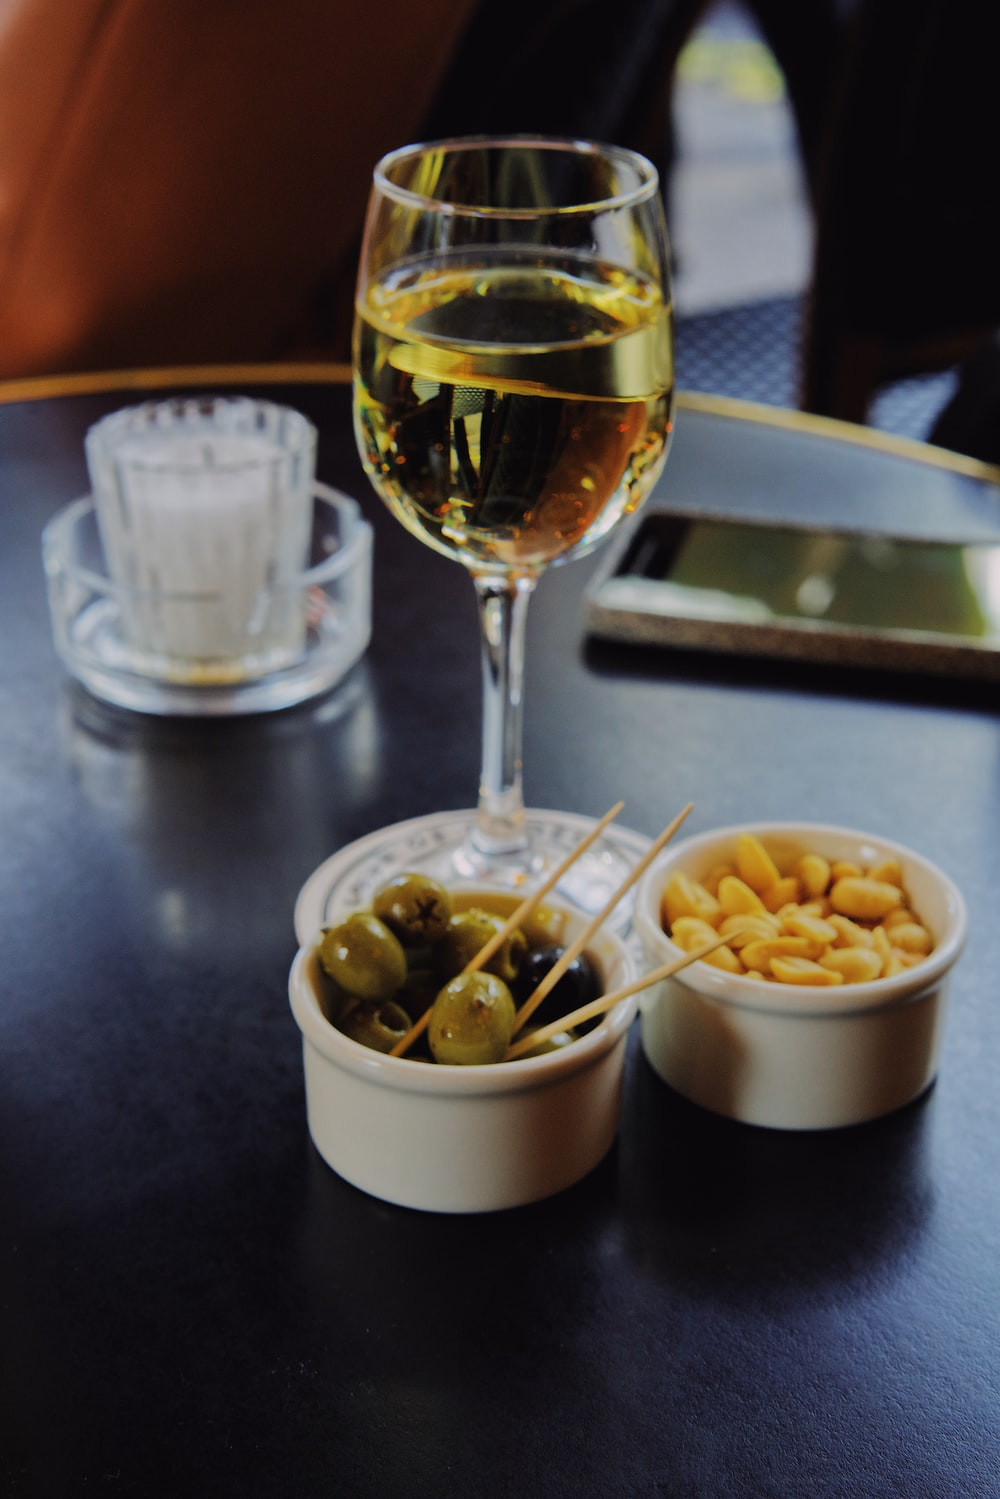 clear wine glass, brown peanuts, and round gray fruits